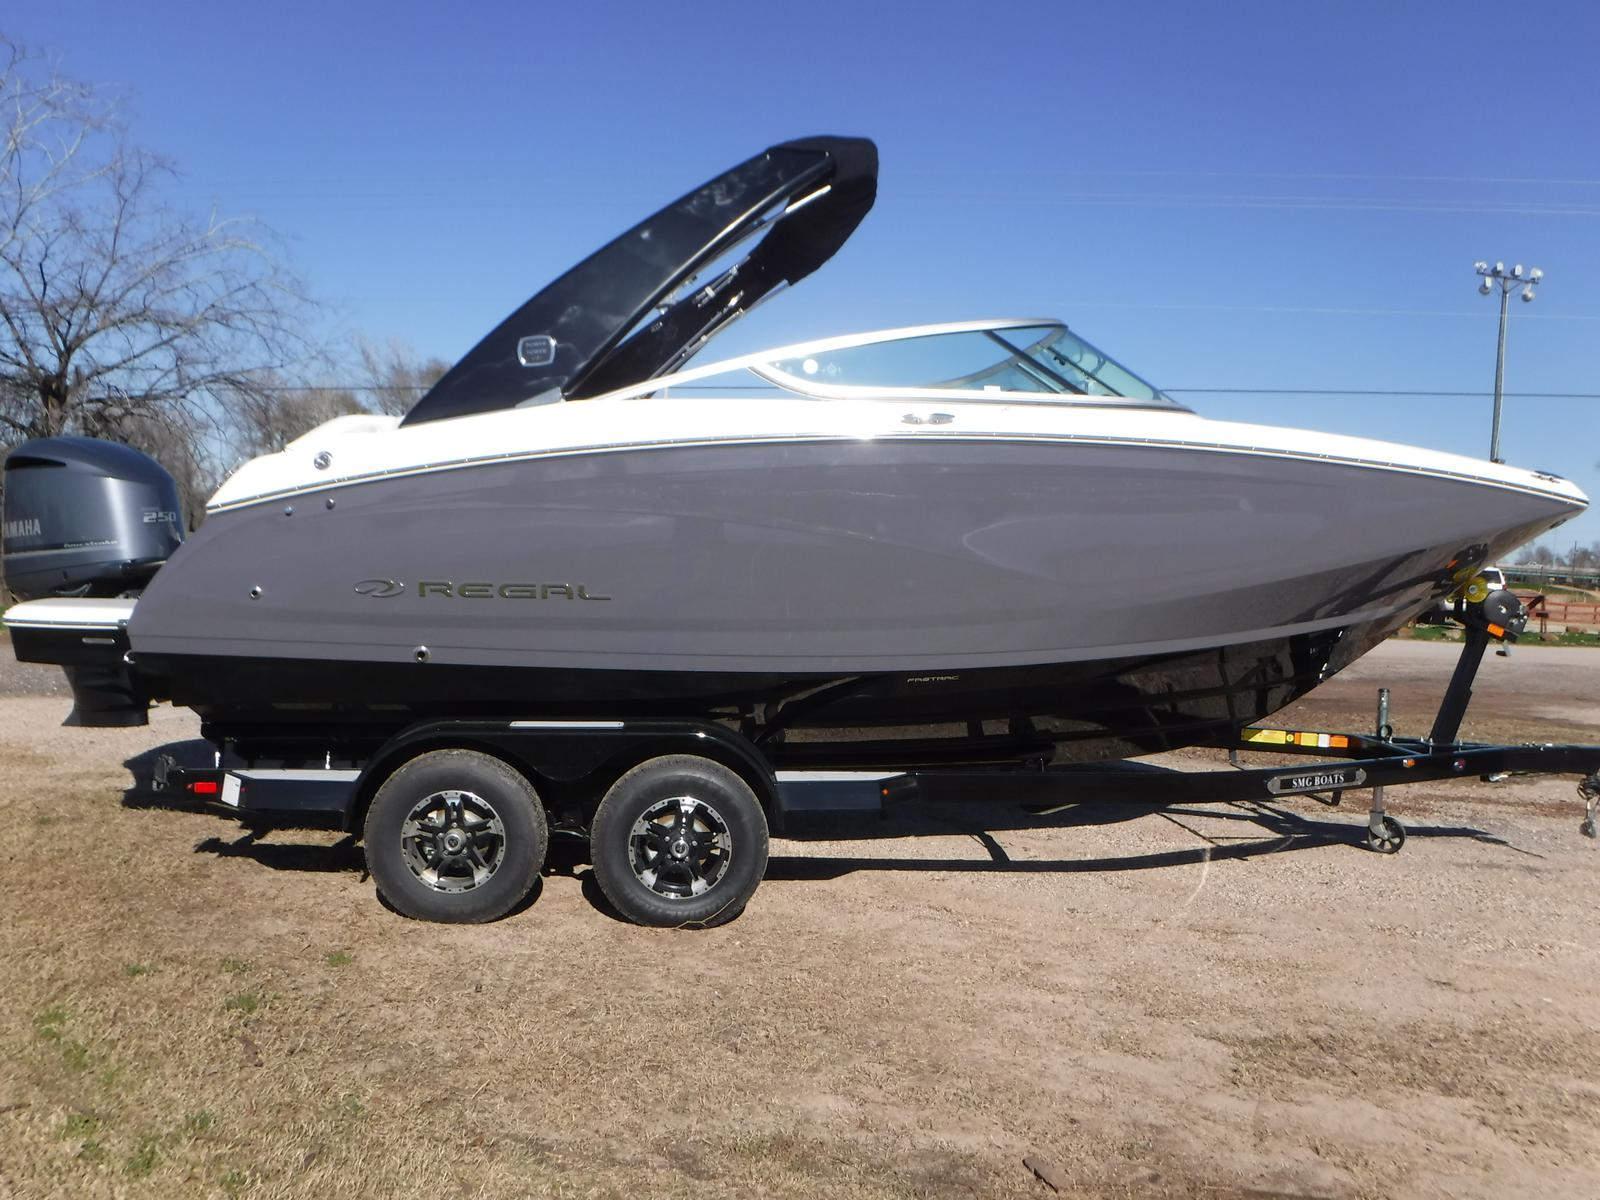 Regal Outboard 23 OBX